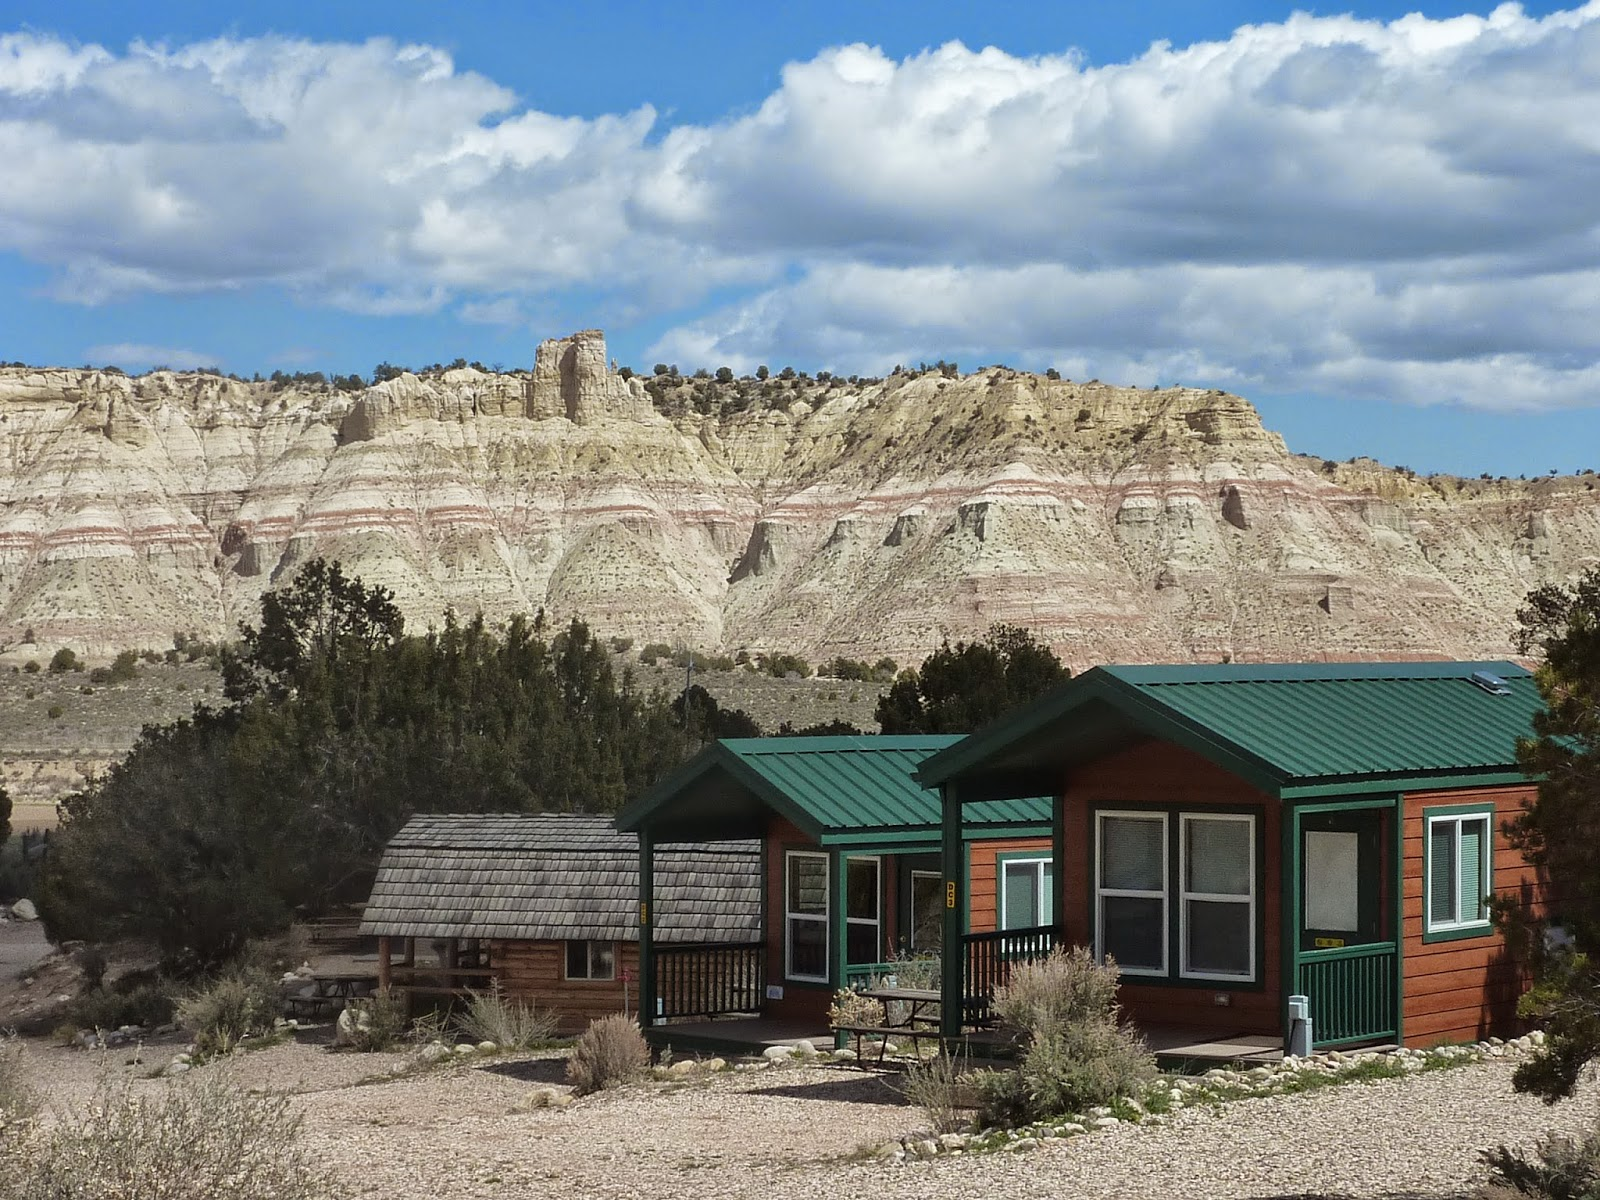 canyon bryce pioneer cabins image ut village accommodations lodging topic